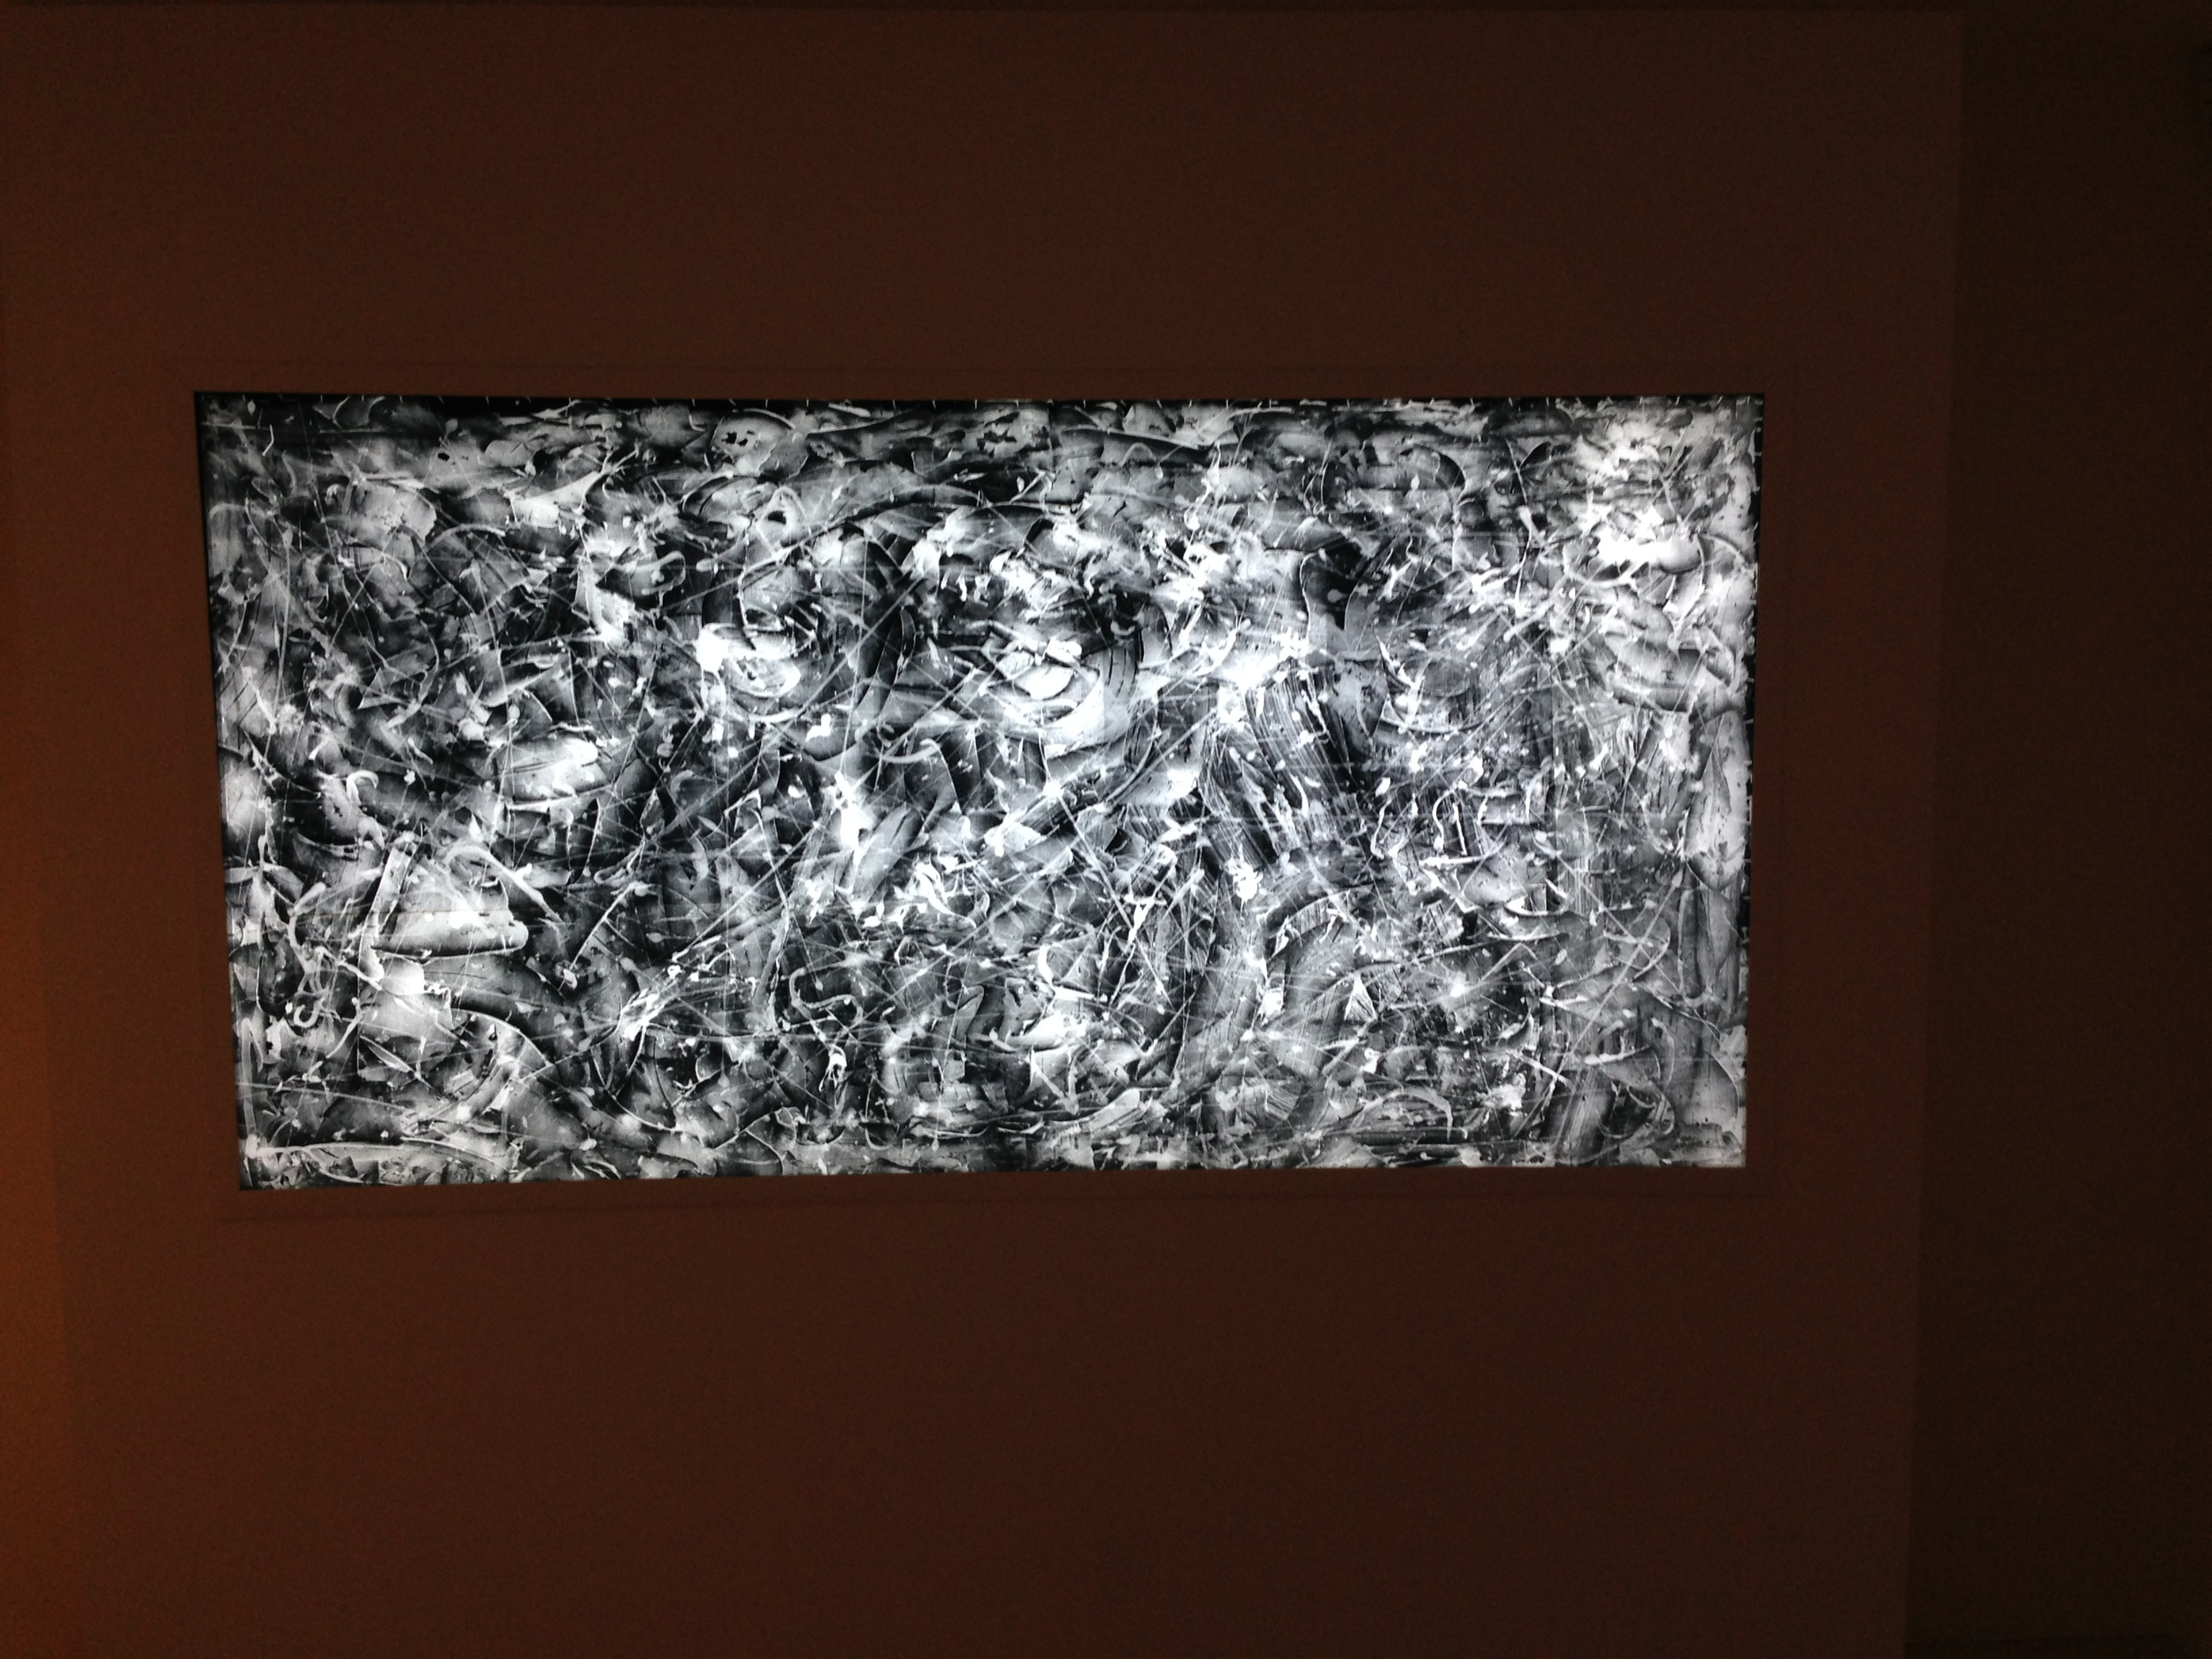 A Jackson Pollock piece on display.